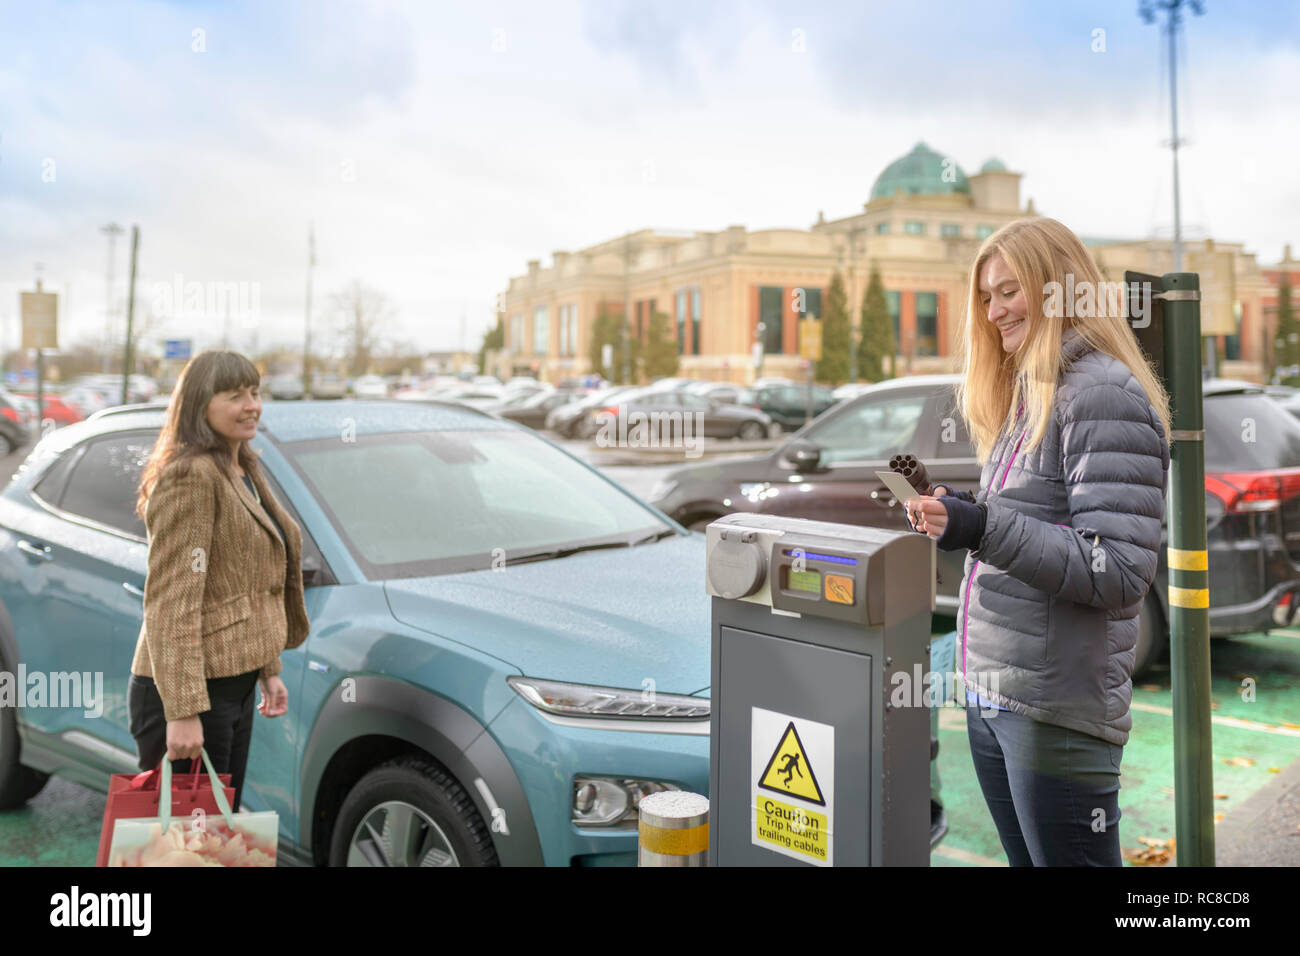 Female shoppers charging electric car at charge point, Manchester, UK - Stock Image